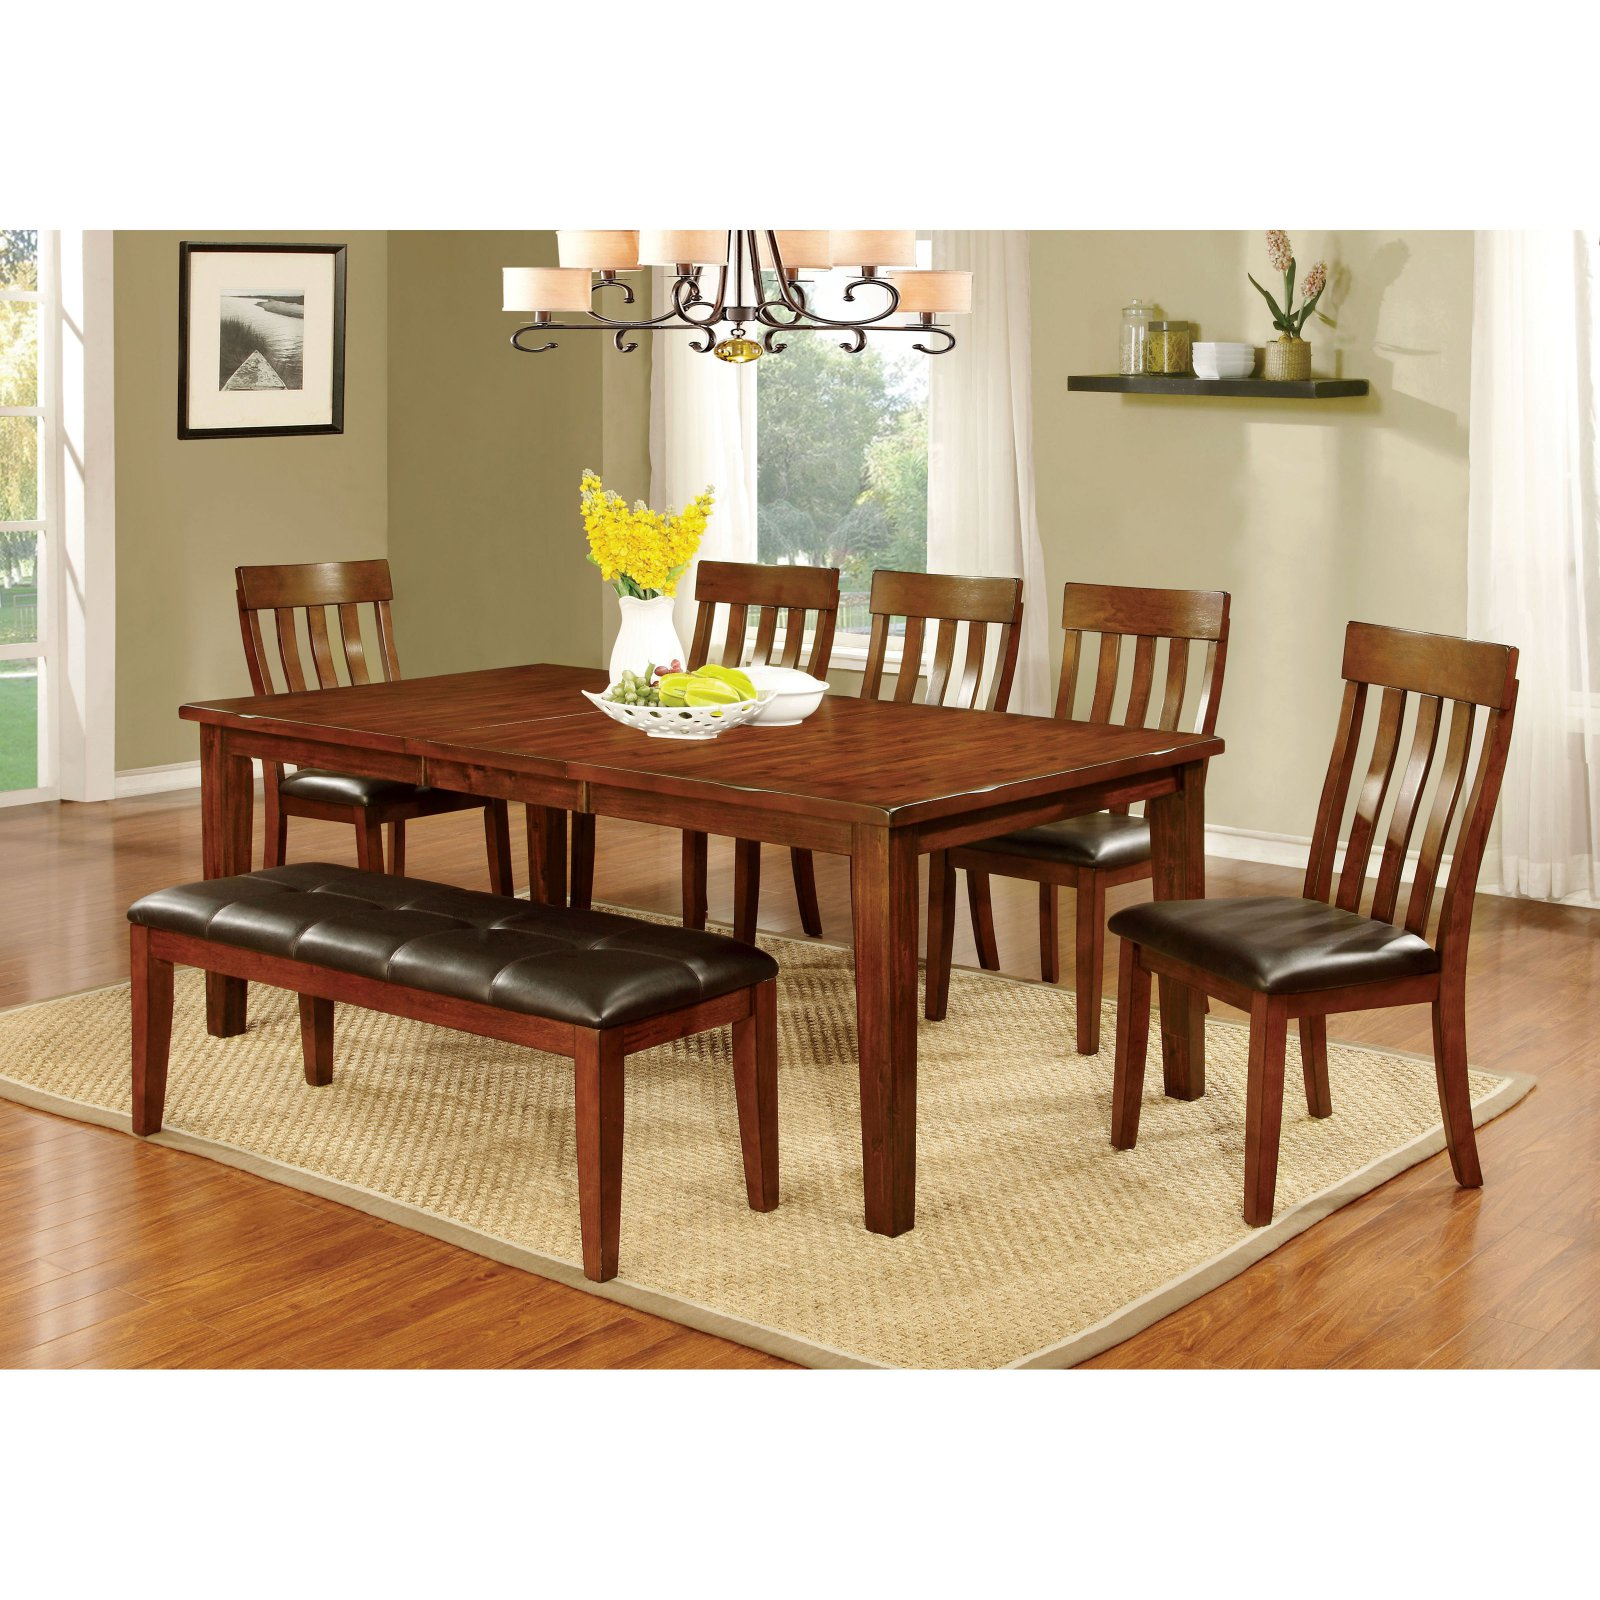 Furniture of America Ginsberg Transitional Dining Table